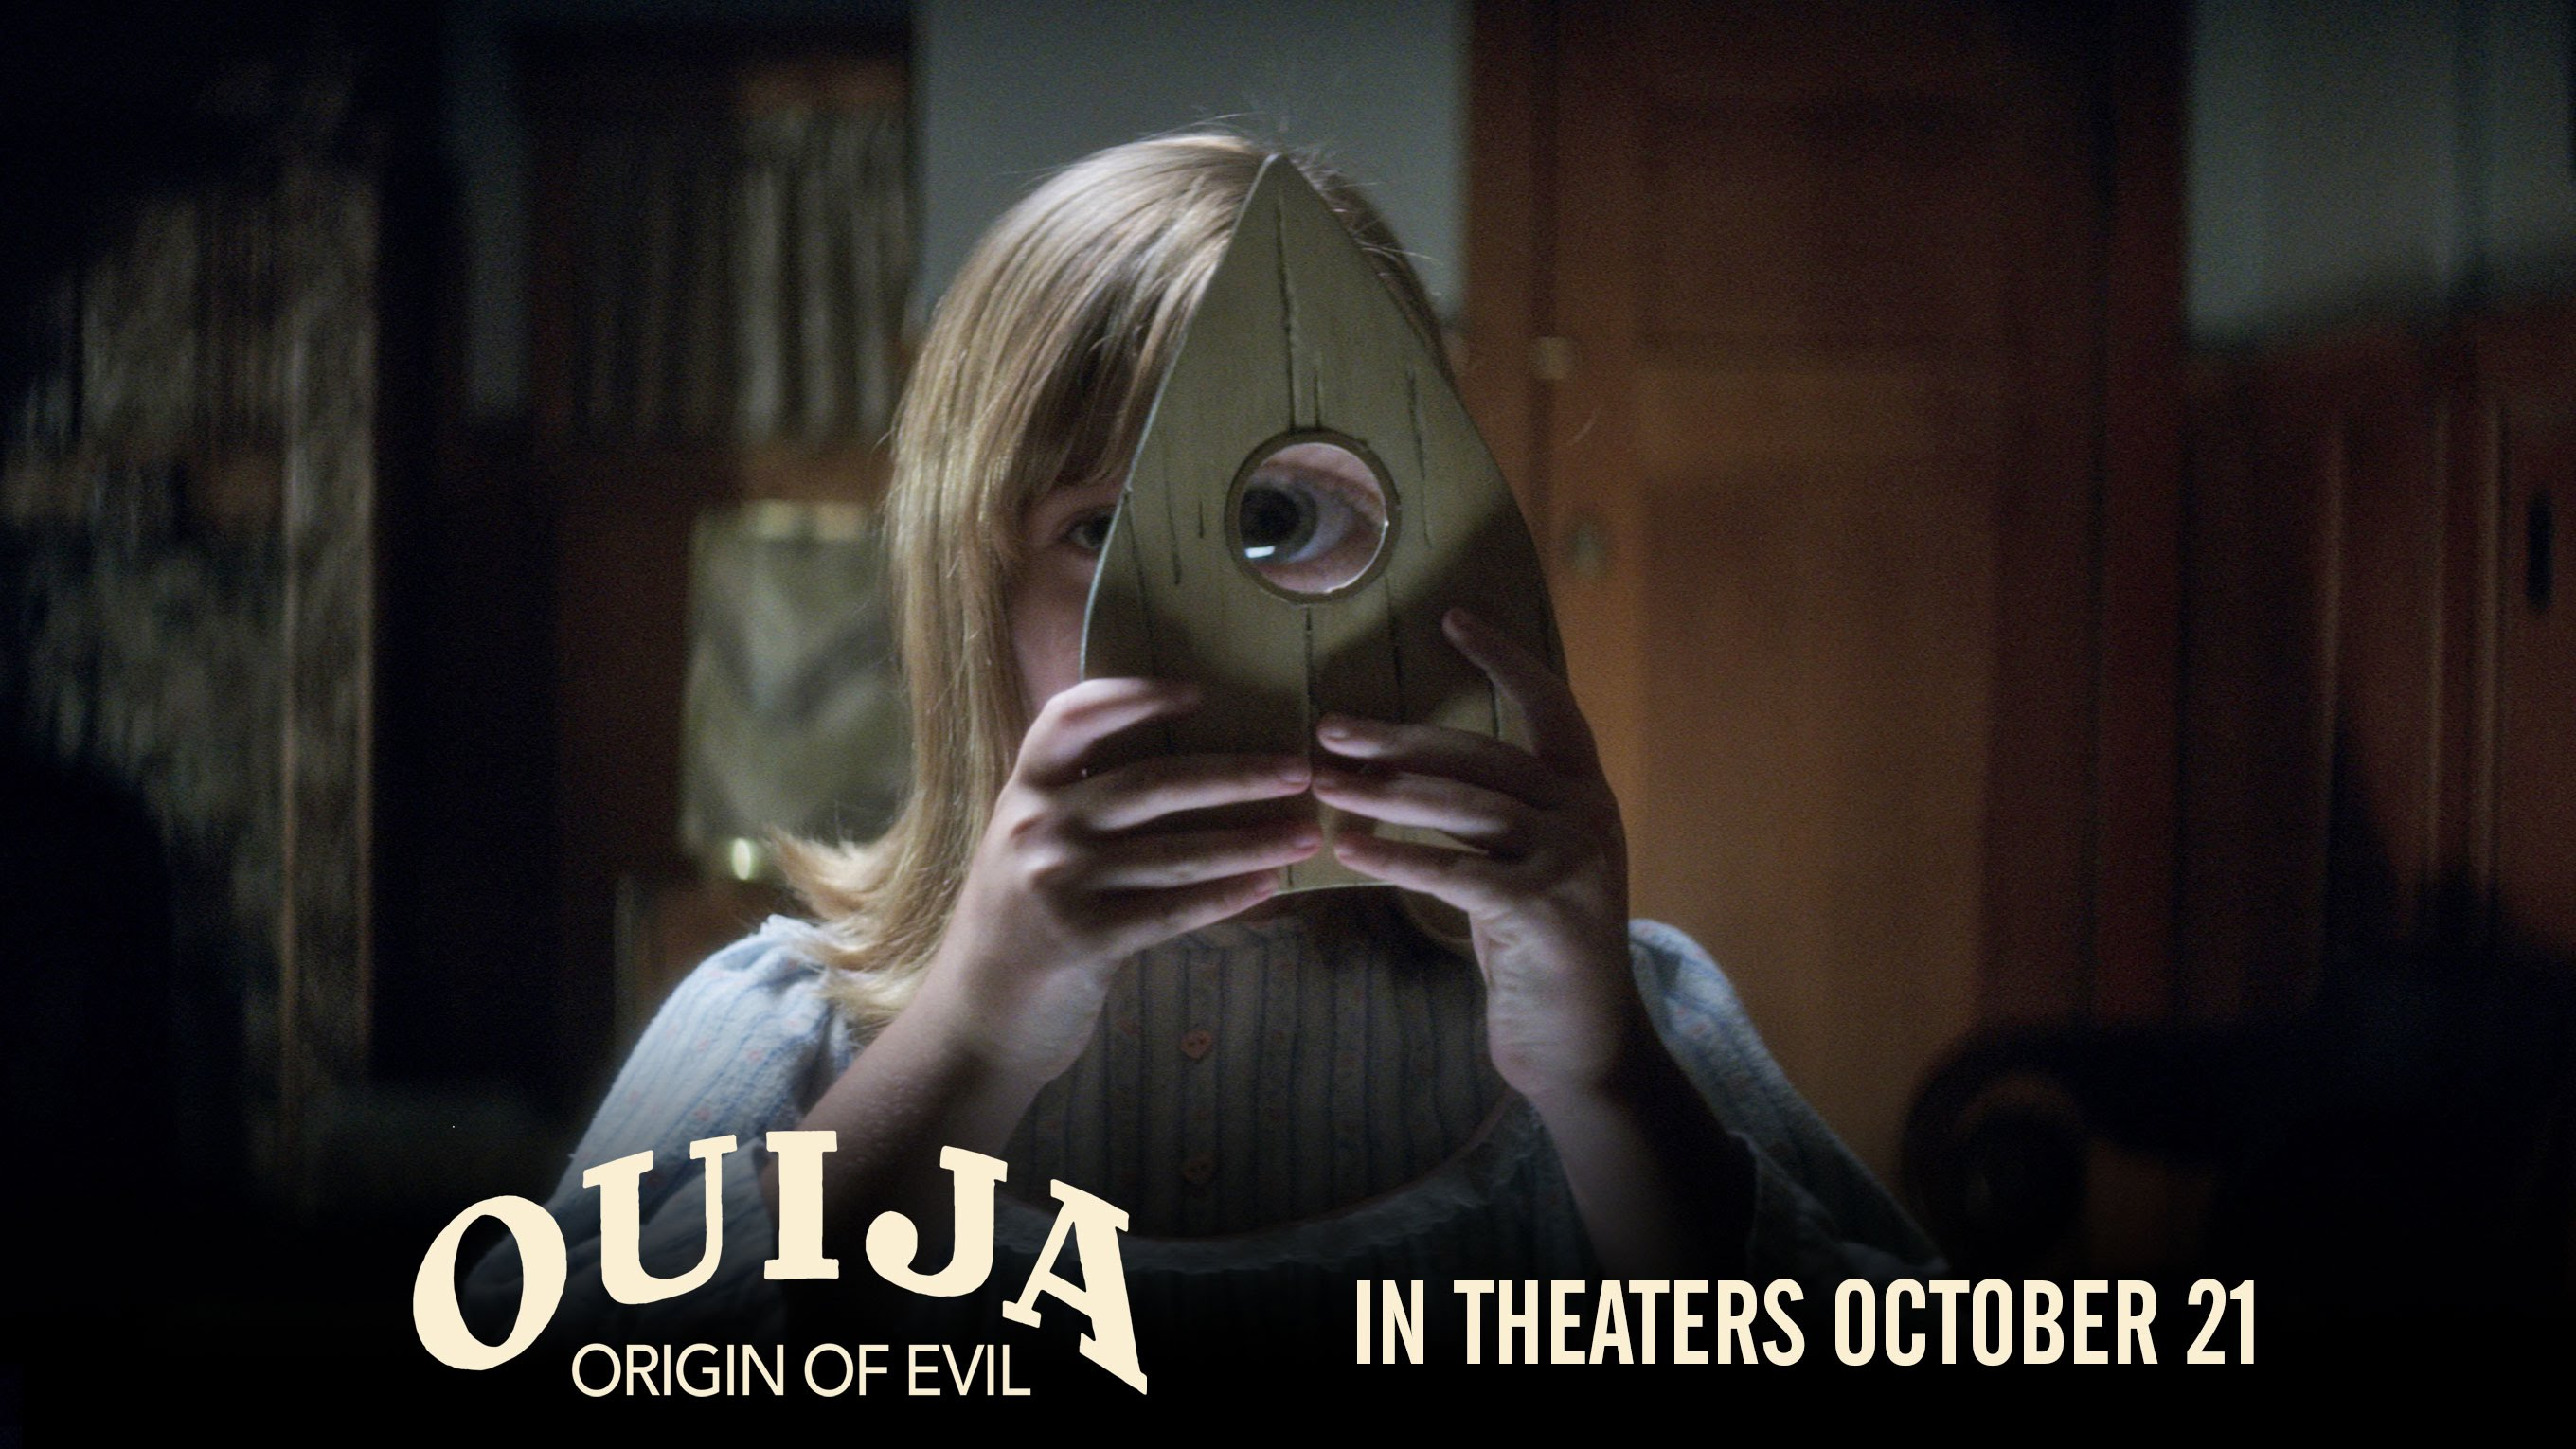 Ouija: Origin of Evil – In Theaters October 21 (TV Spot 2) (HD)